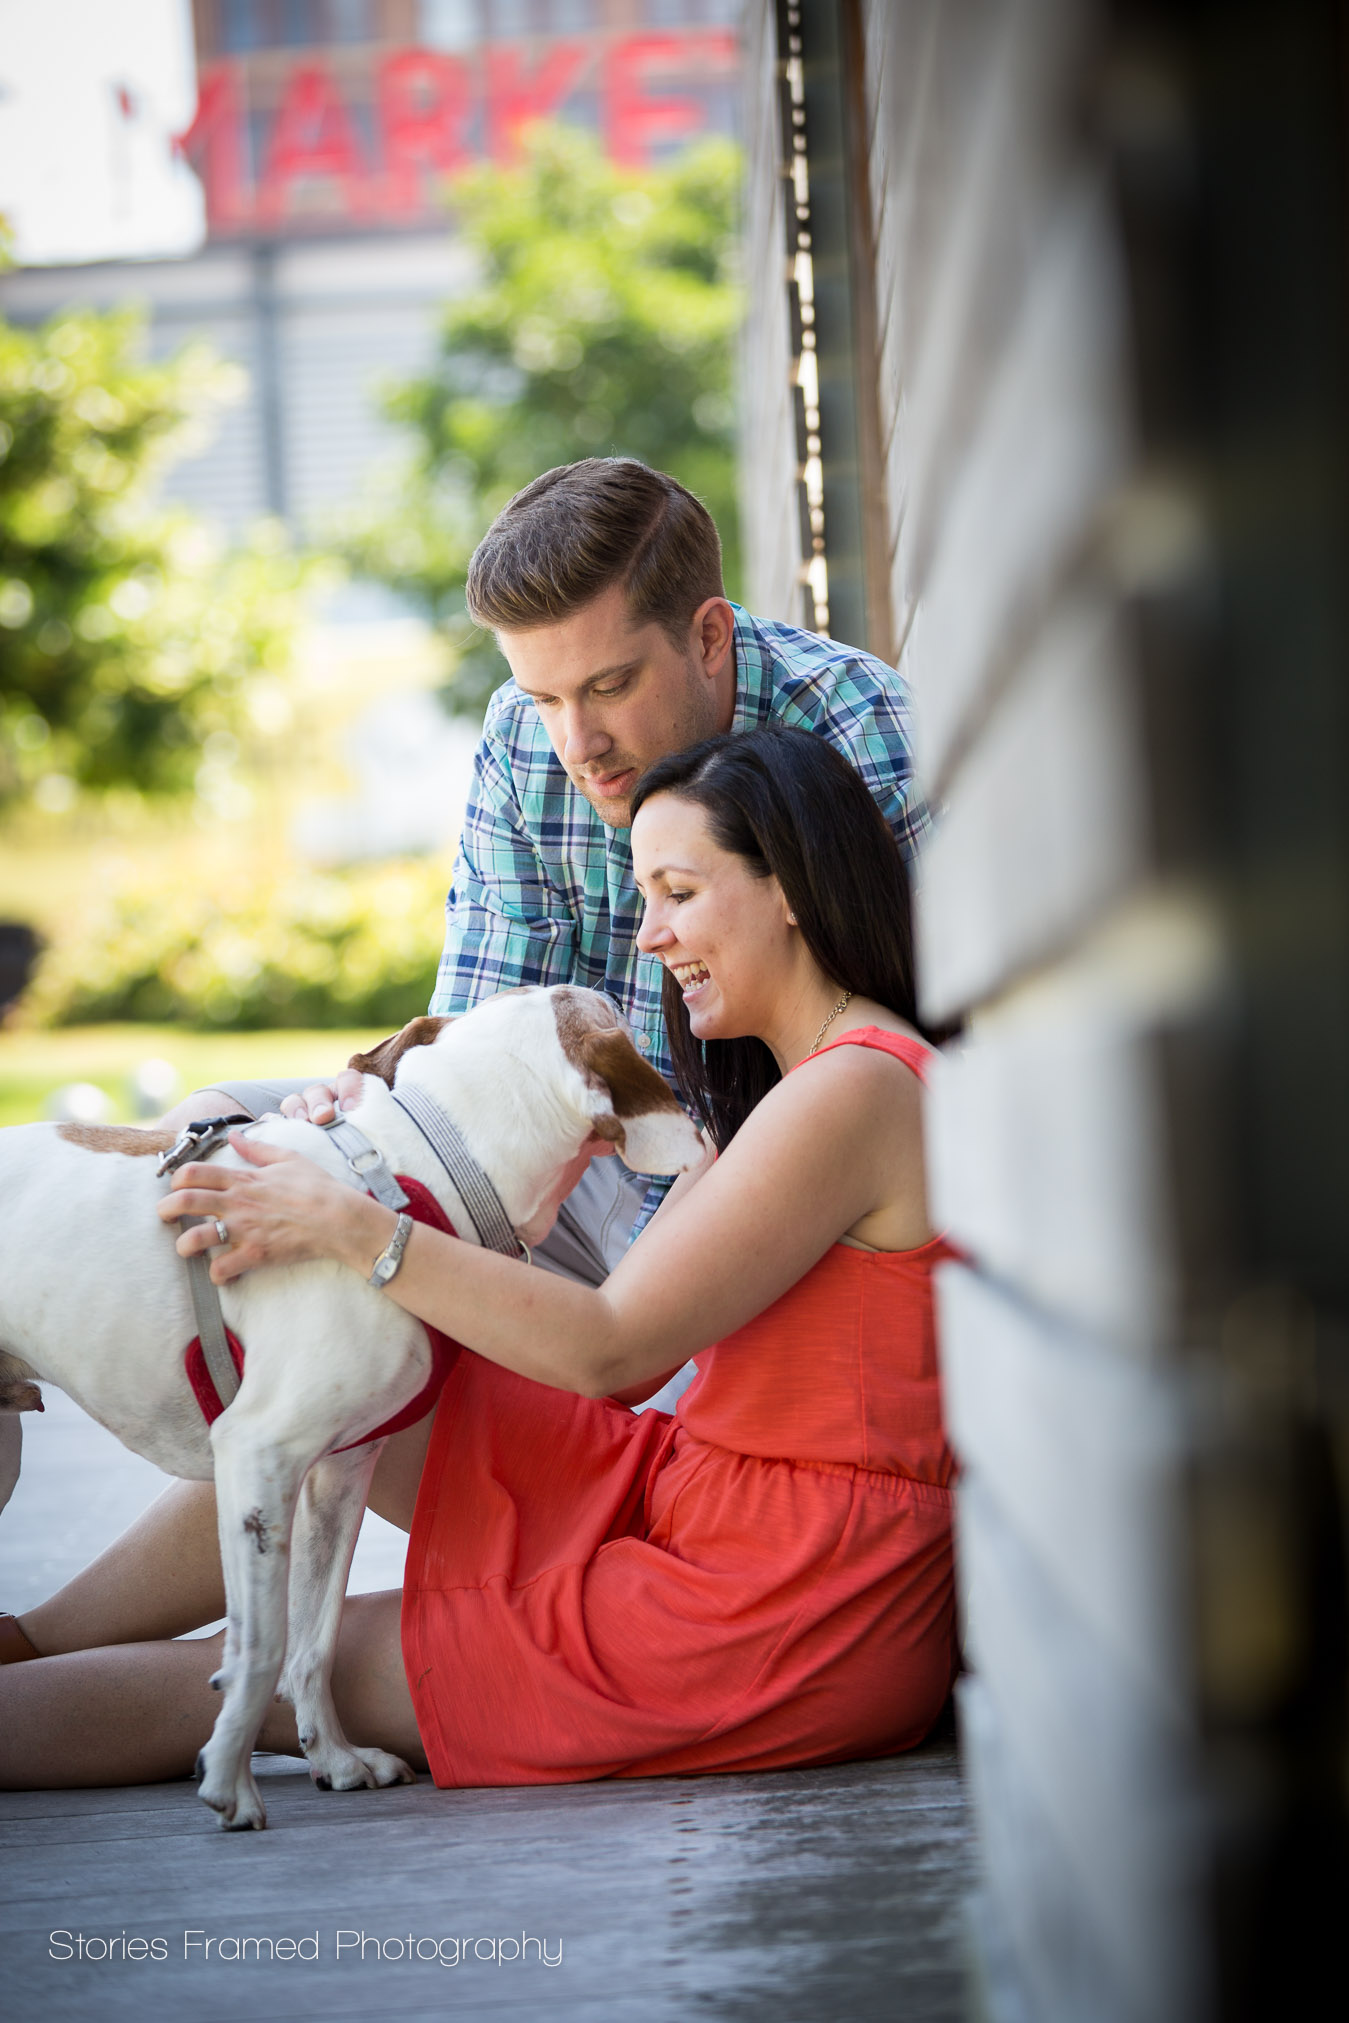 Meet Murphy the Dog Who Joined for Family Photos.